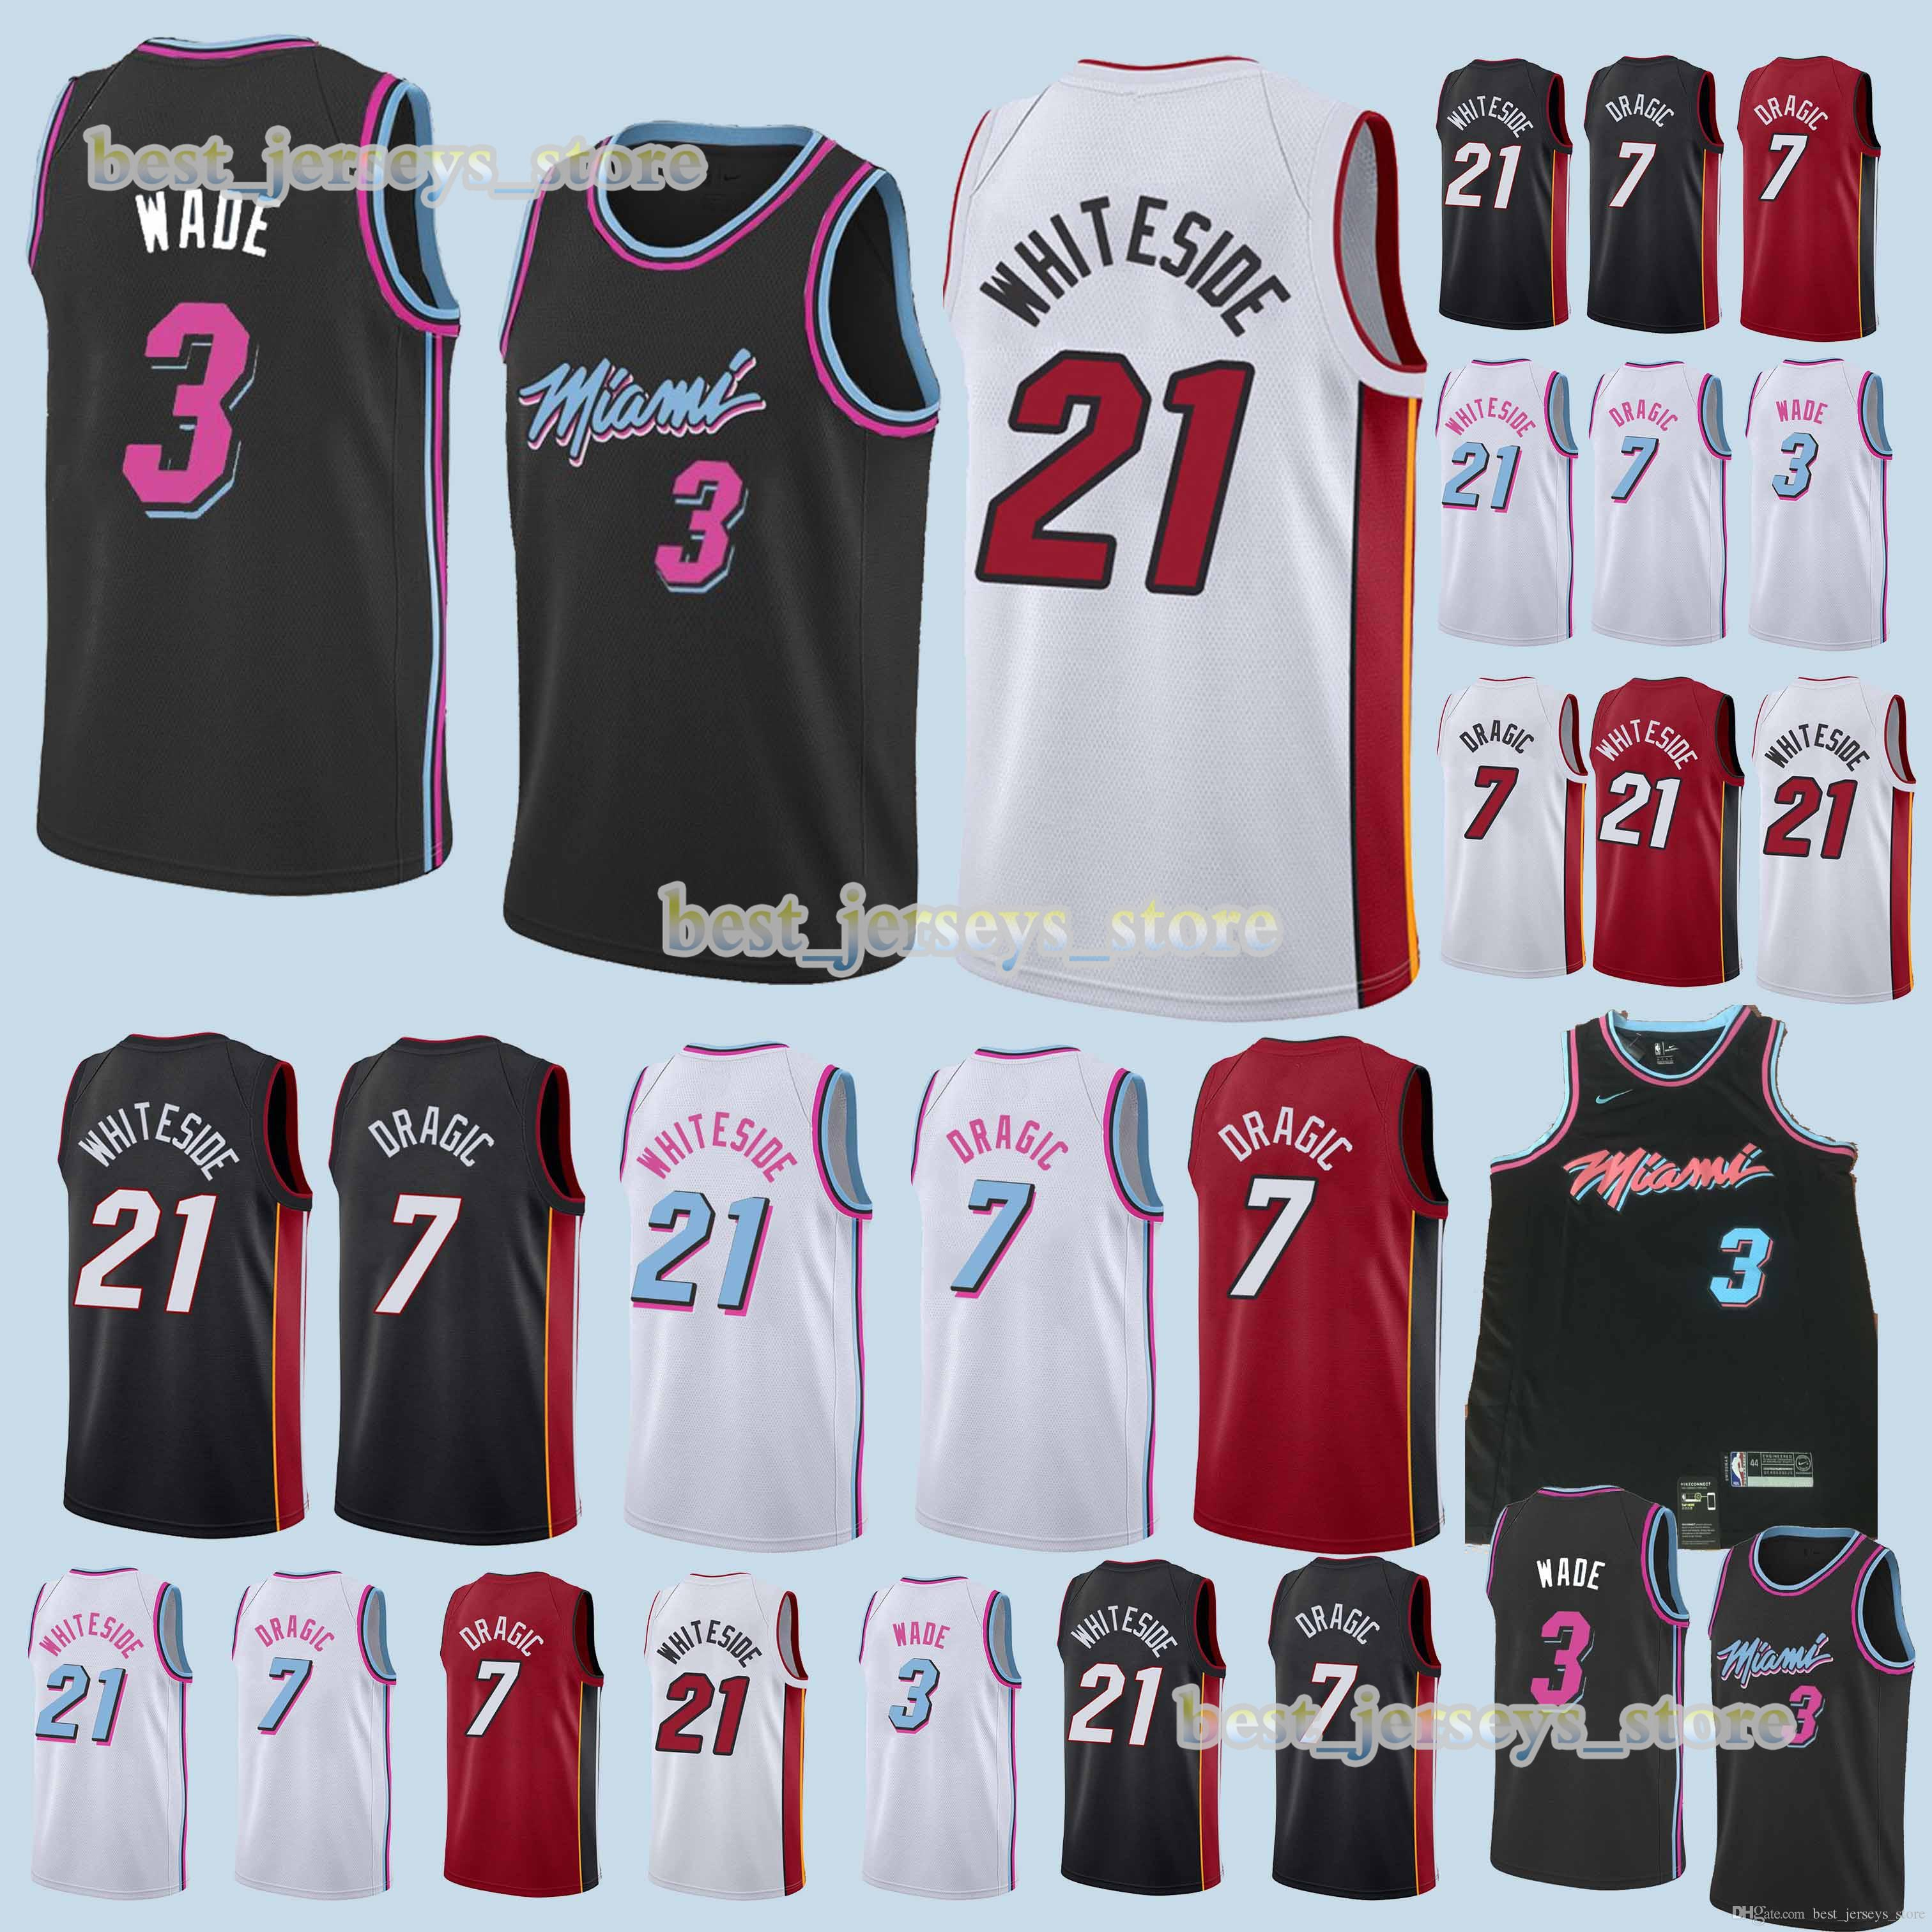 52237289328 2019 3 Wade 2019 21 Whiteside 7 Dragic Basketball Jerseyssuperior Quality 18  19 Hot Sale Jersey Sportswear Design Sweater From Best jerseys store